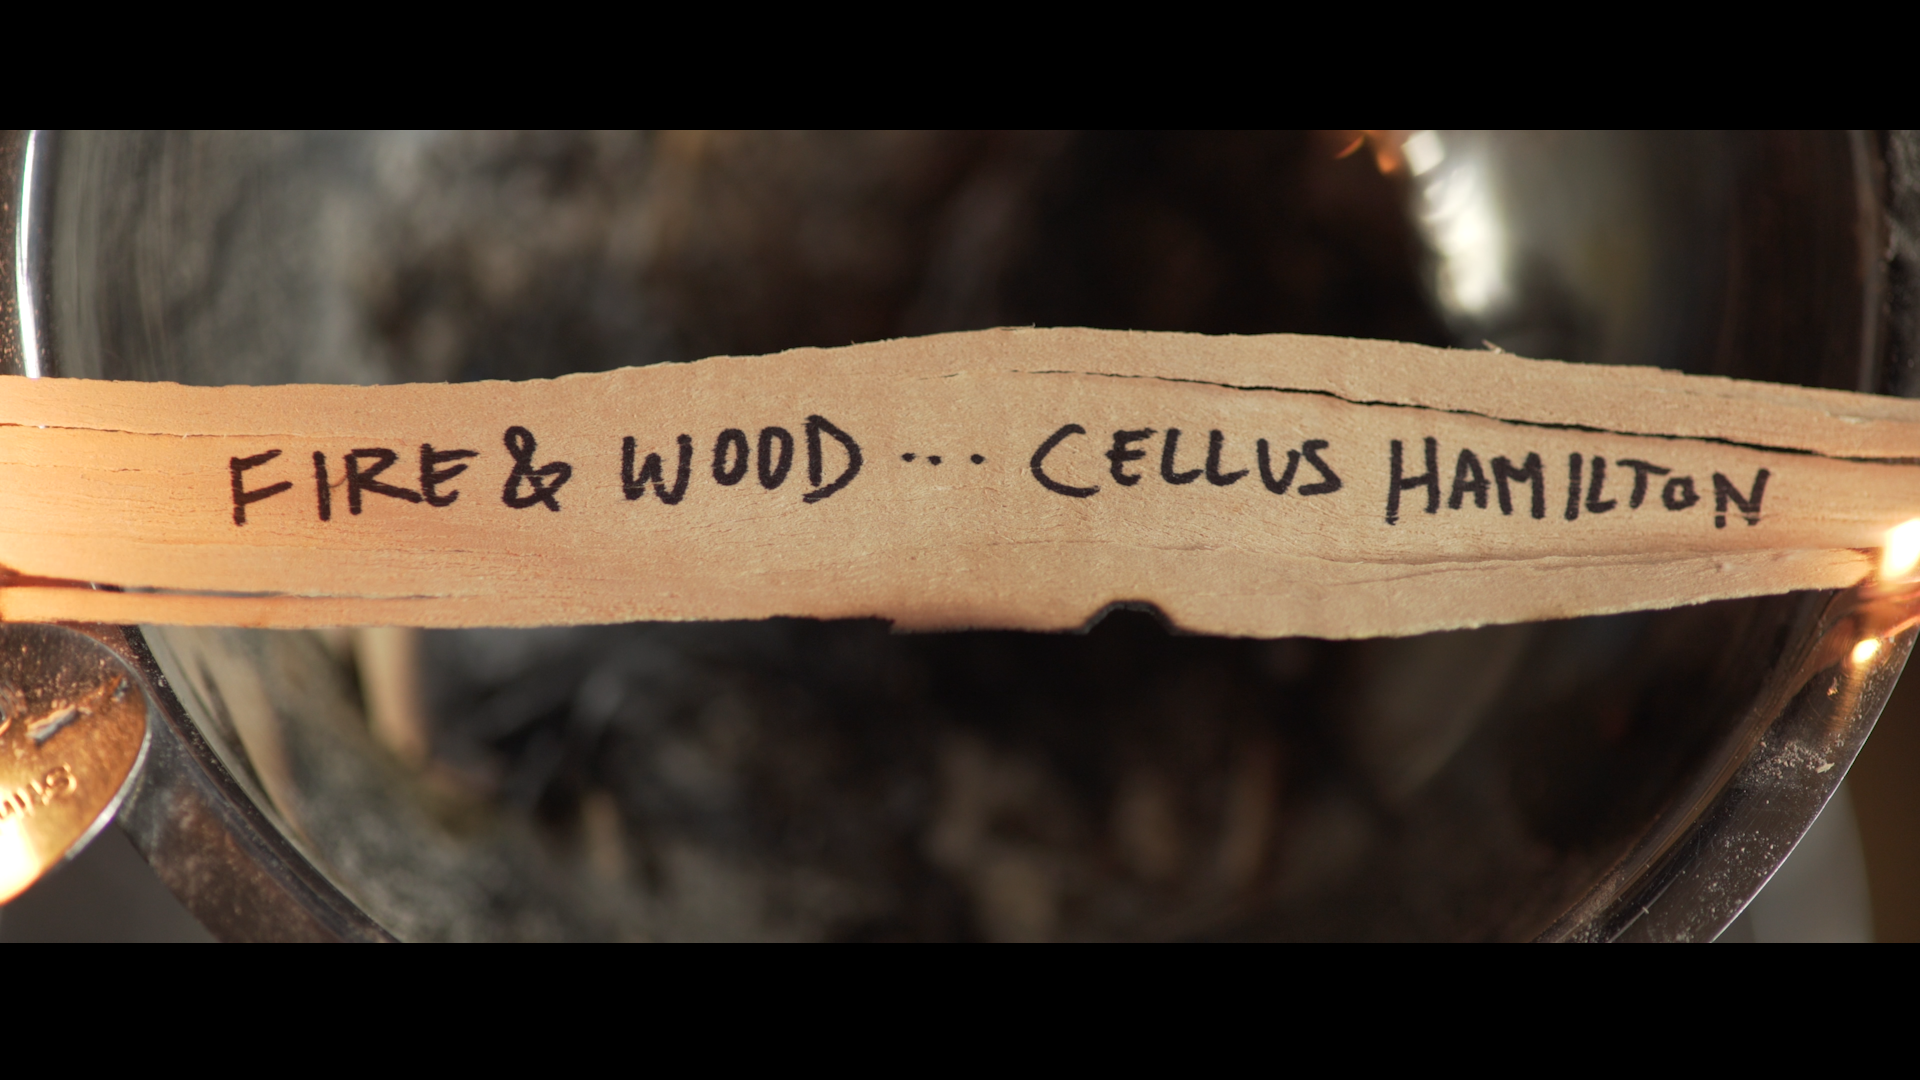 fire and wood by cellus hamilton